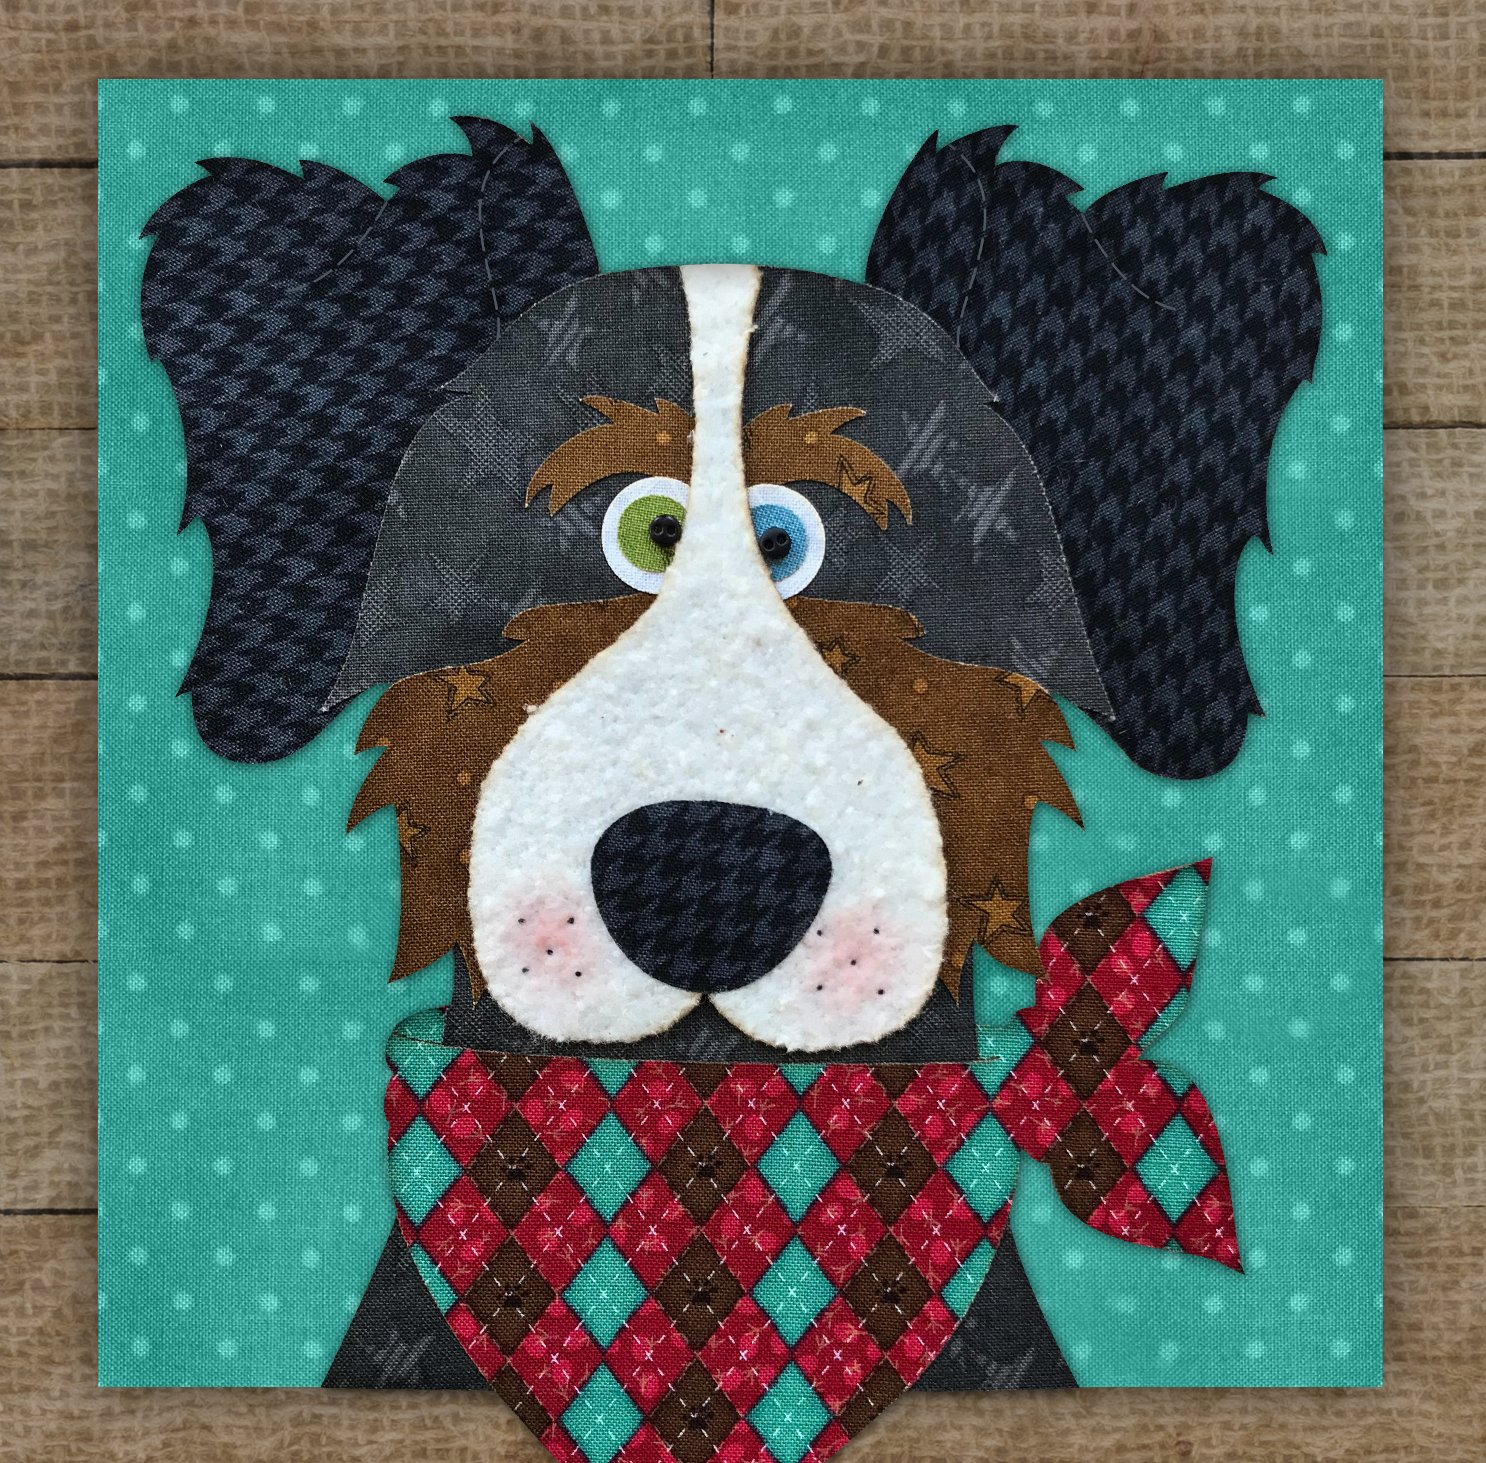 Australian Shepherd Precut Fused Applique Kit